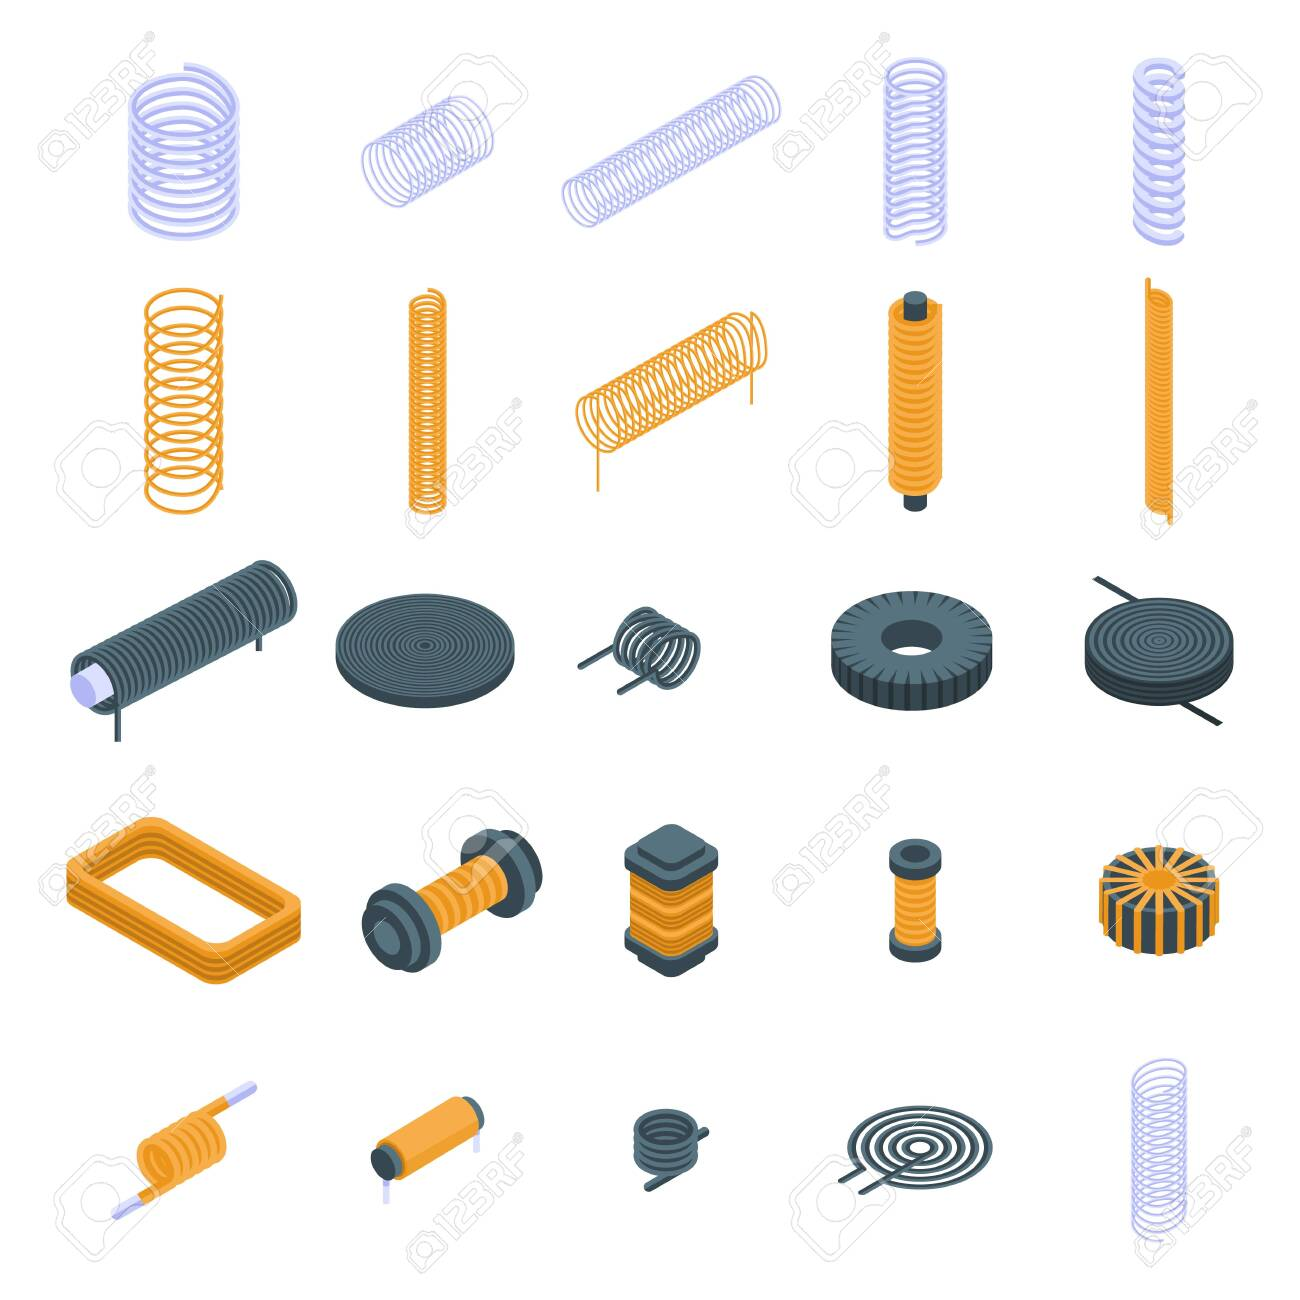 Coil icons set, isometric style - 131103150